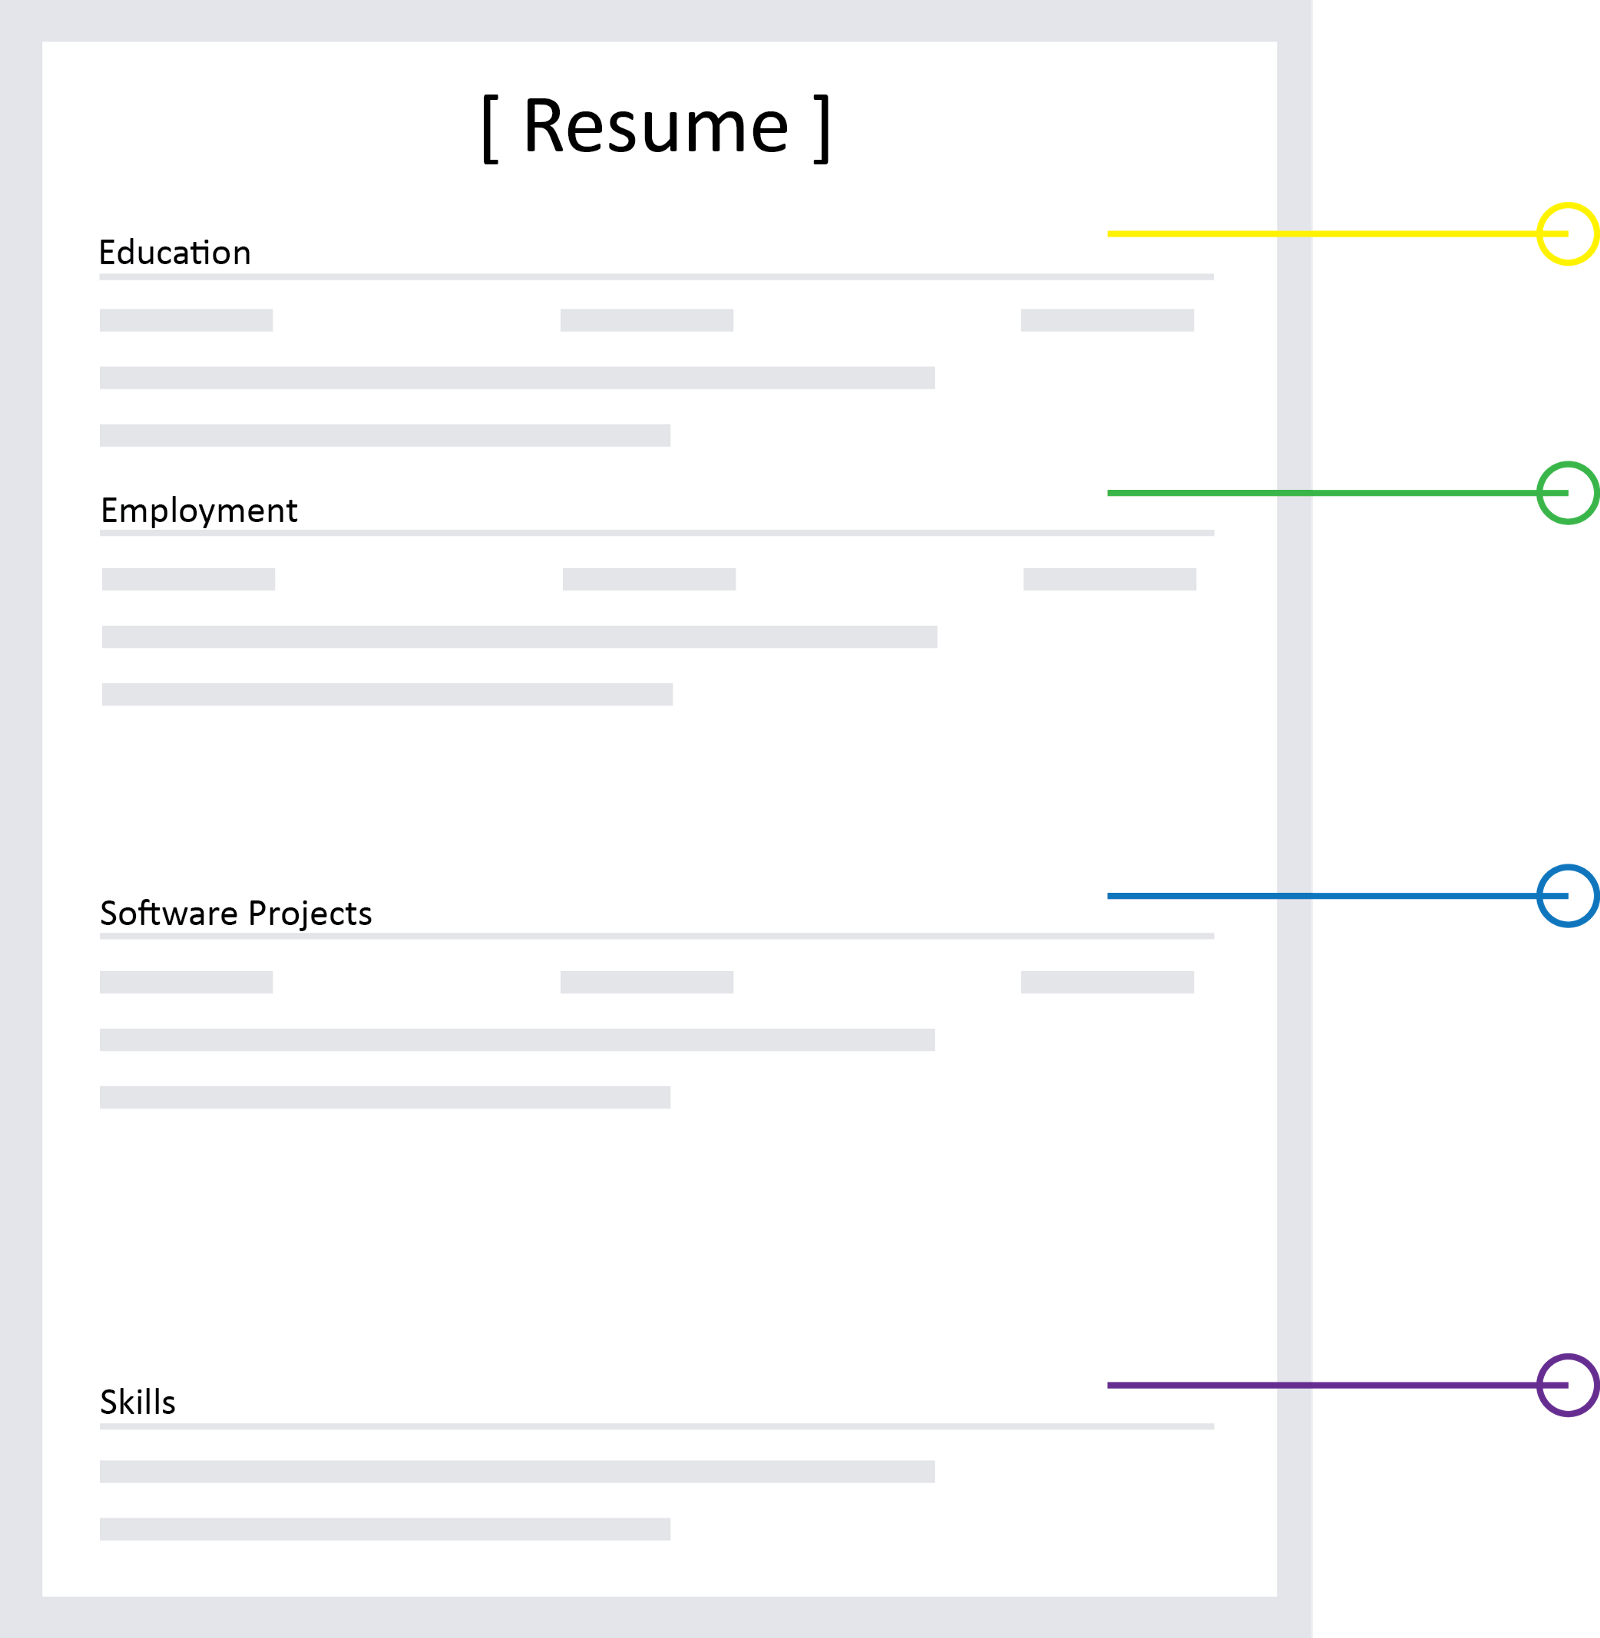 an in depth analysis of the rsum that got me interviews at google facebook amazon microsoft apple and more - What Is Another Name For Resume